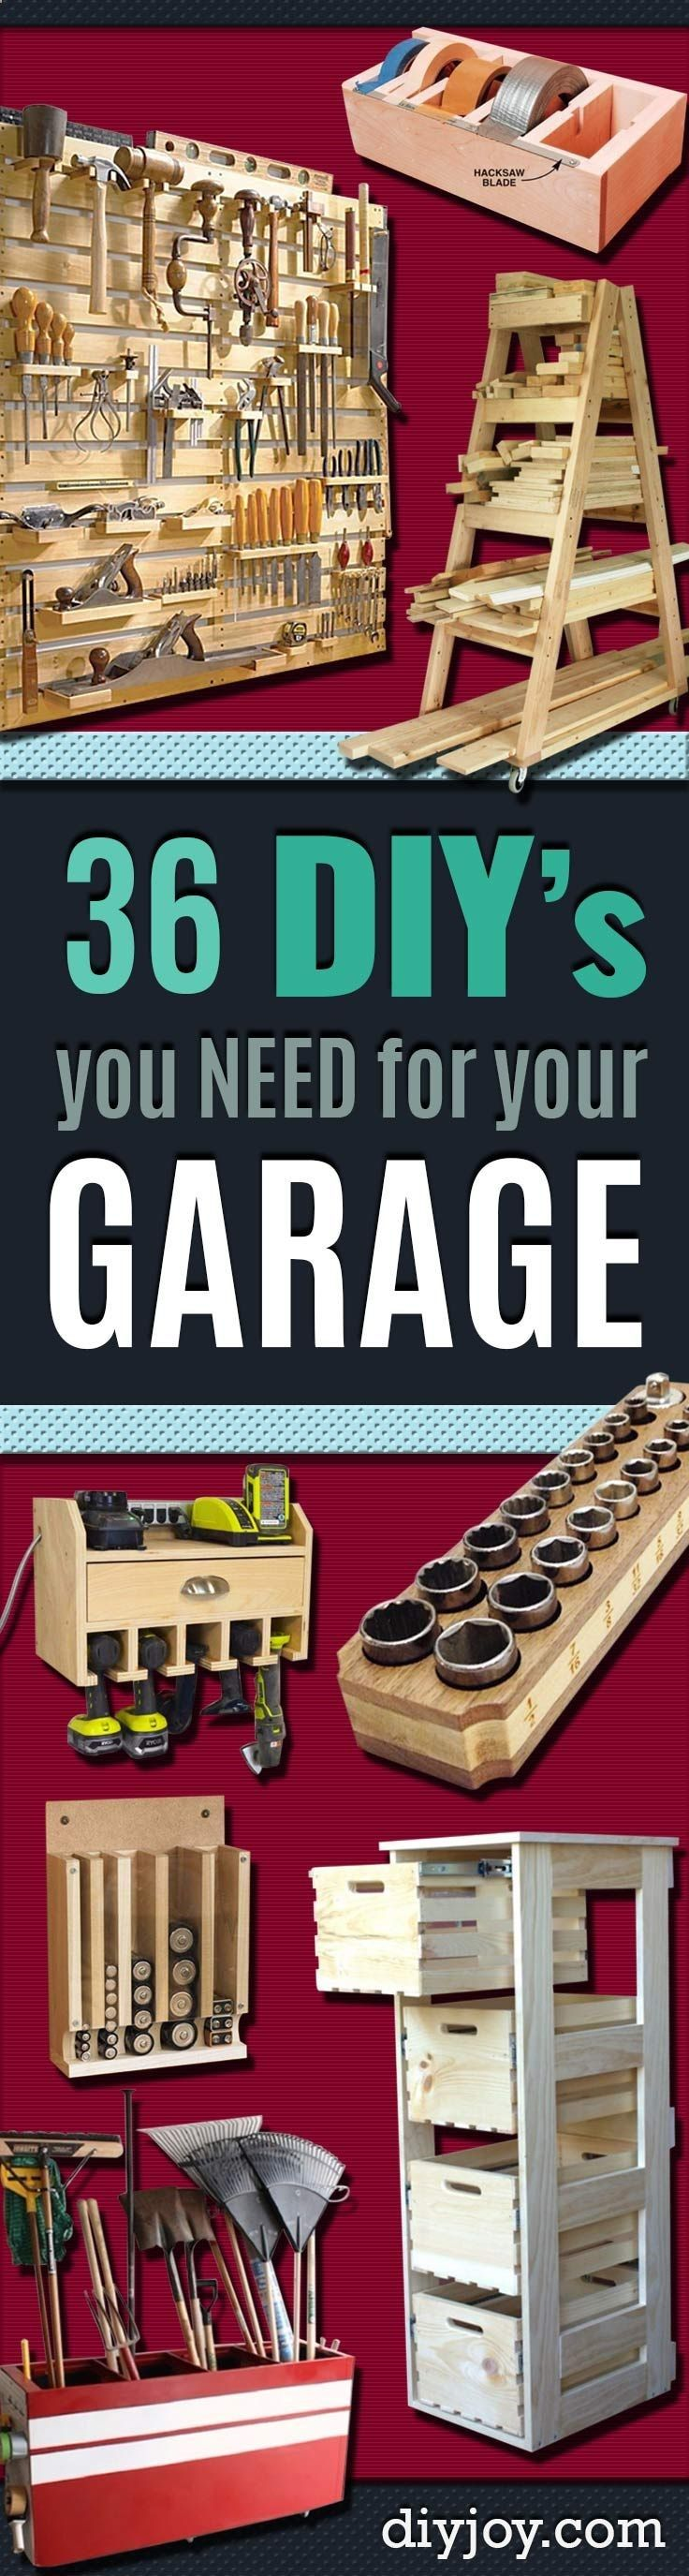 Wood profits diy projects your garage needs do it yourself garage wood profits diy projects your garage needs do it yourself garage makeover ideas include storage organization shelves and project plans for c solutioingenieria Image collections